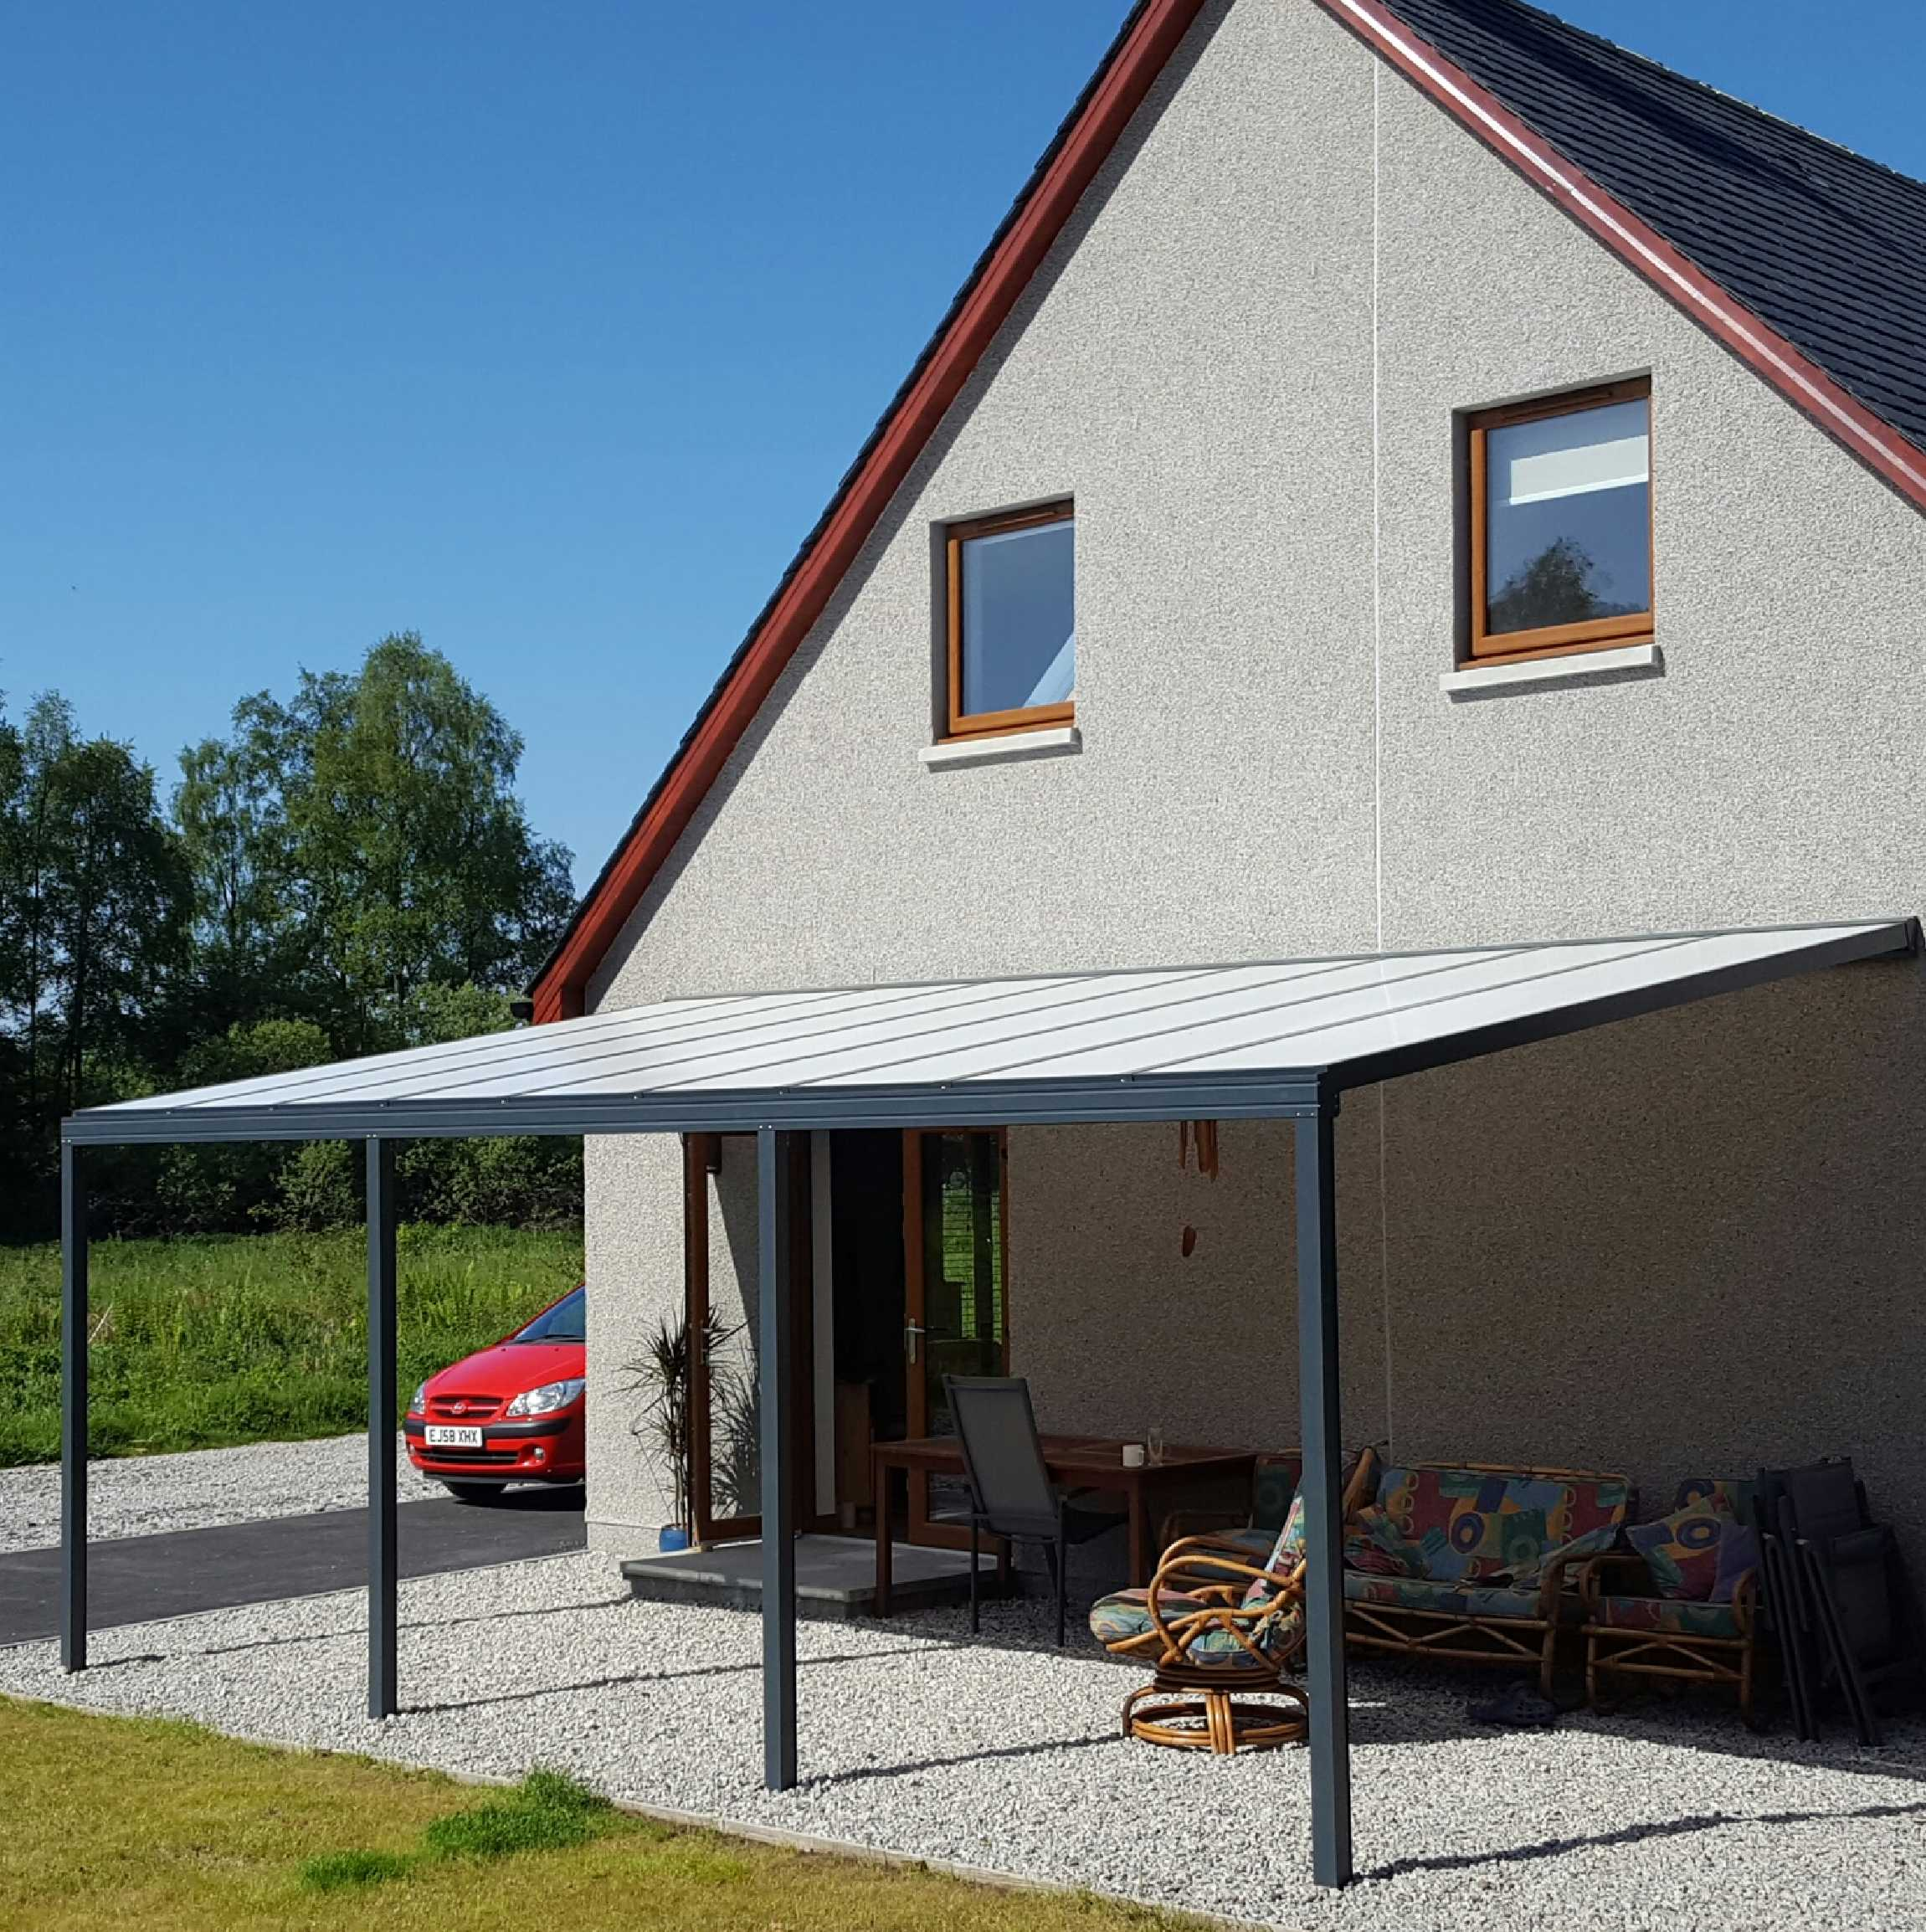 Great selection of Omega Smart Lean-To Canopy, Anthracite Grey, 16mm Polycarbonate Glazing - 9.1m (W) x 4.5m (P), (5) Supporting Posts